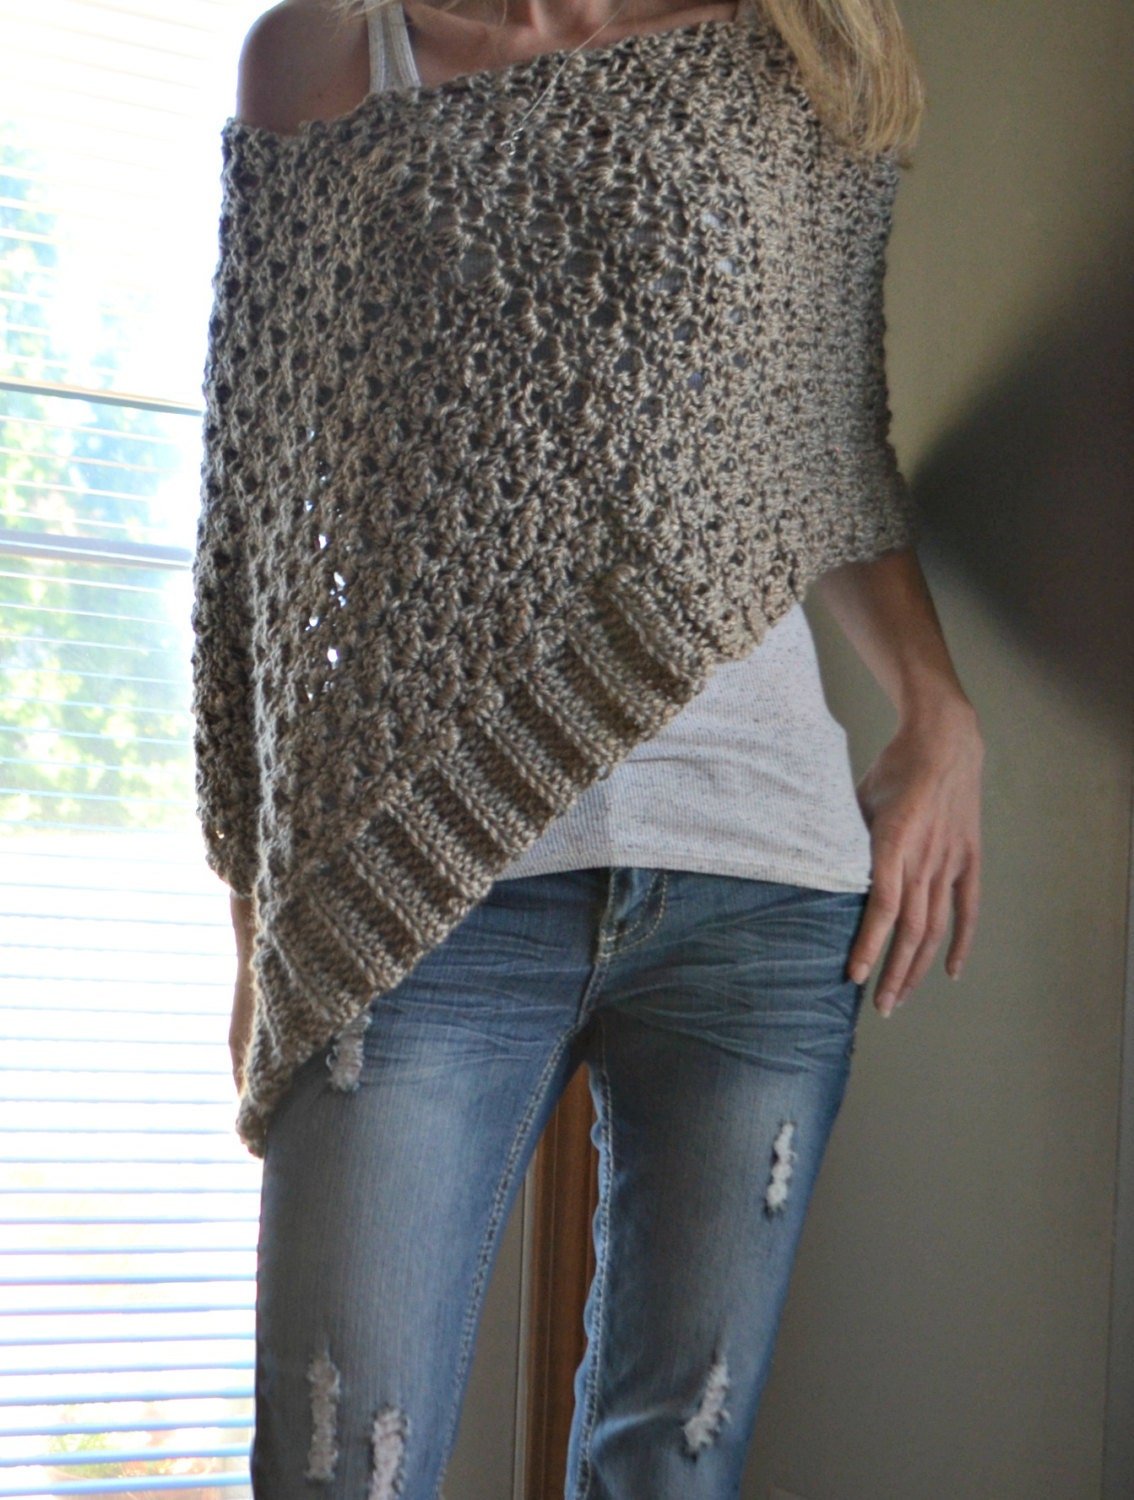 Crochet Patterns For Ponchos : CROCHET PATTERN Delia Precious Poncho Crochet by CassJamesDesigns